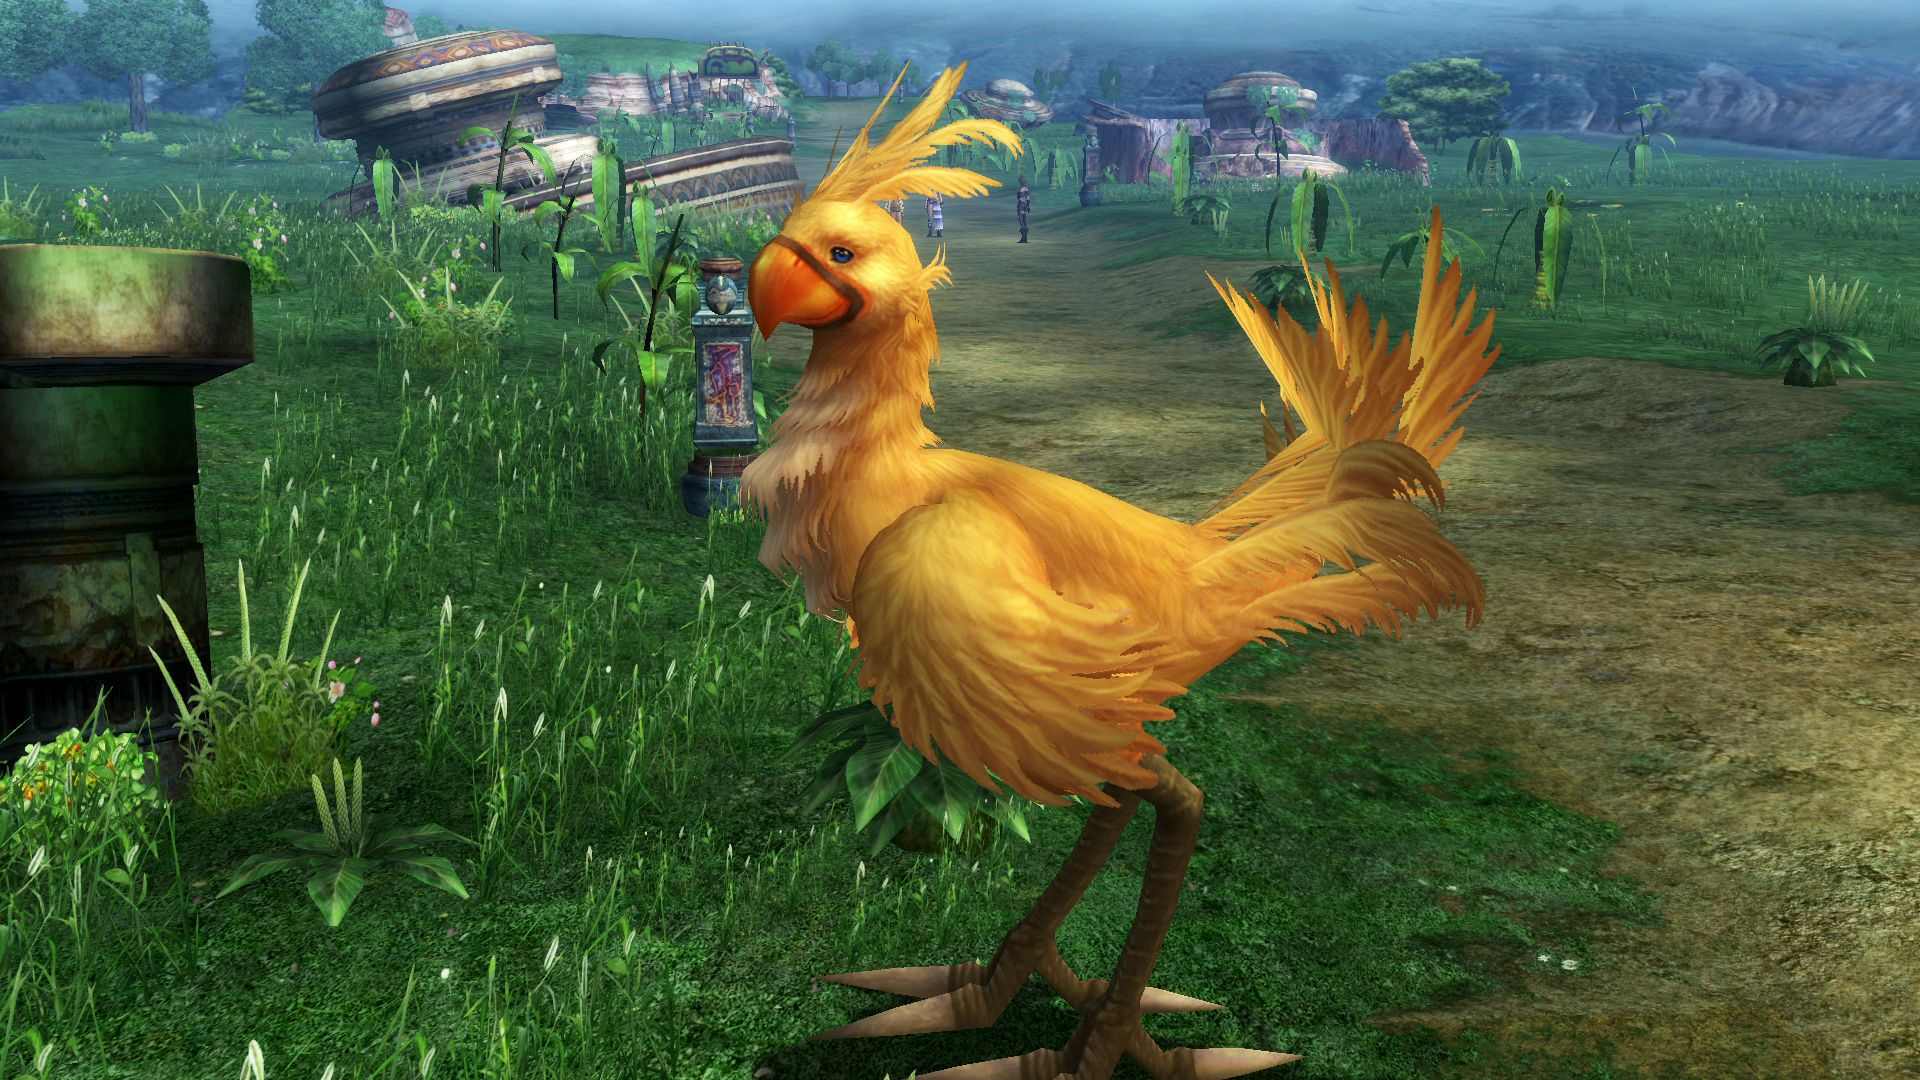 Final Fantasy 10 Chocobo - ©Square Enix